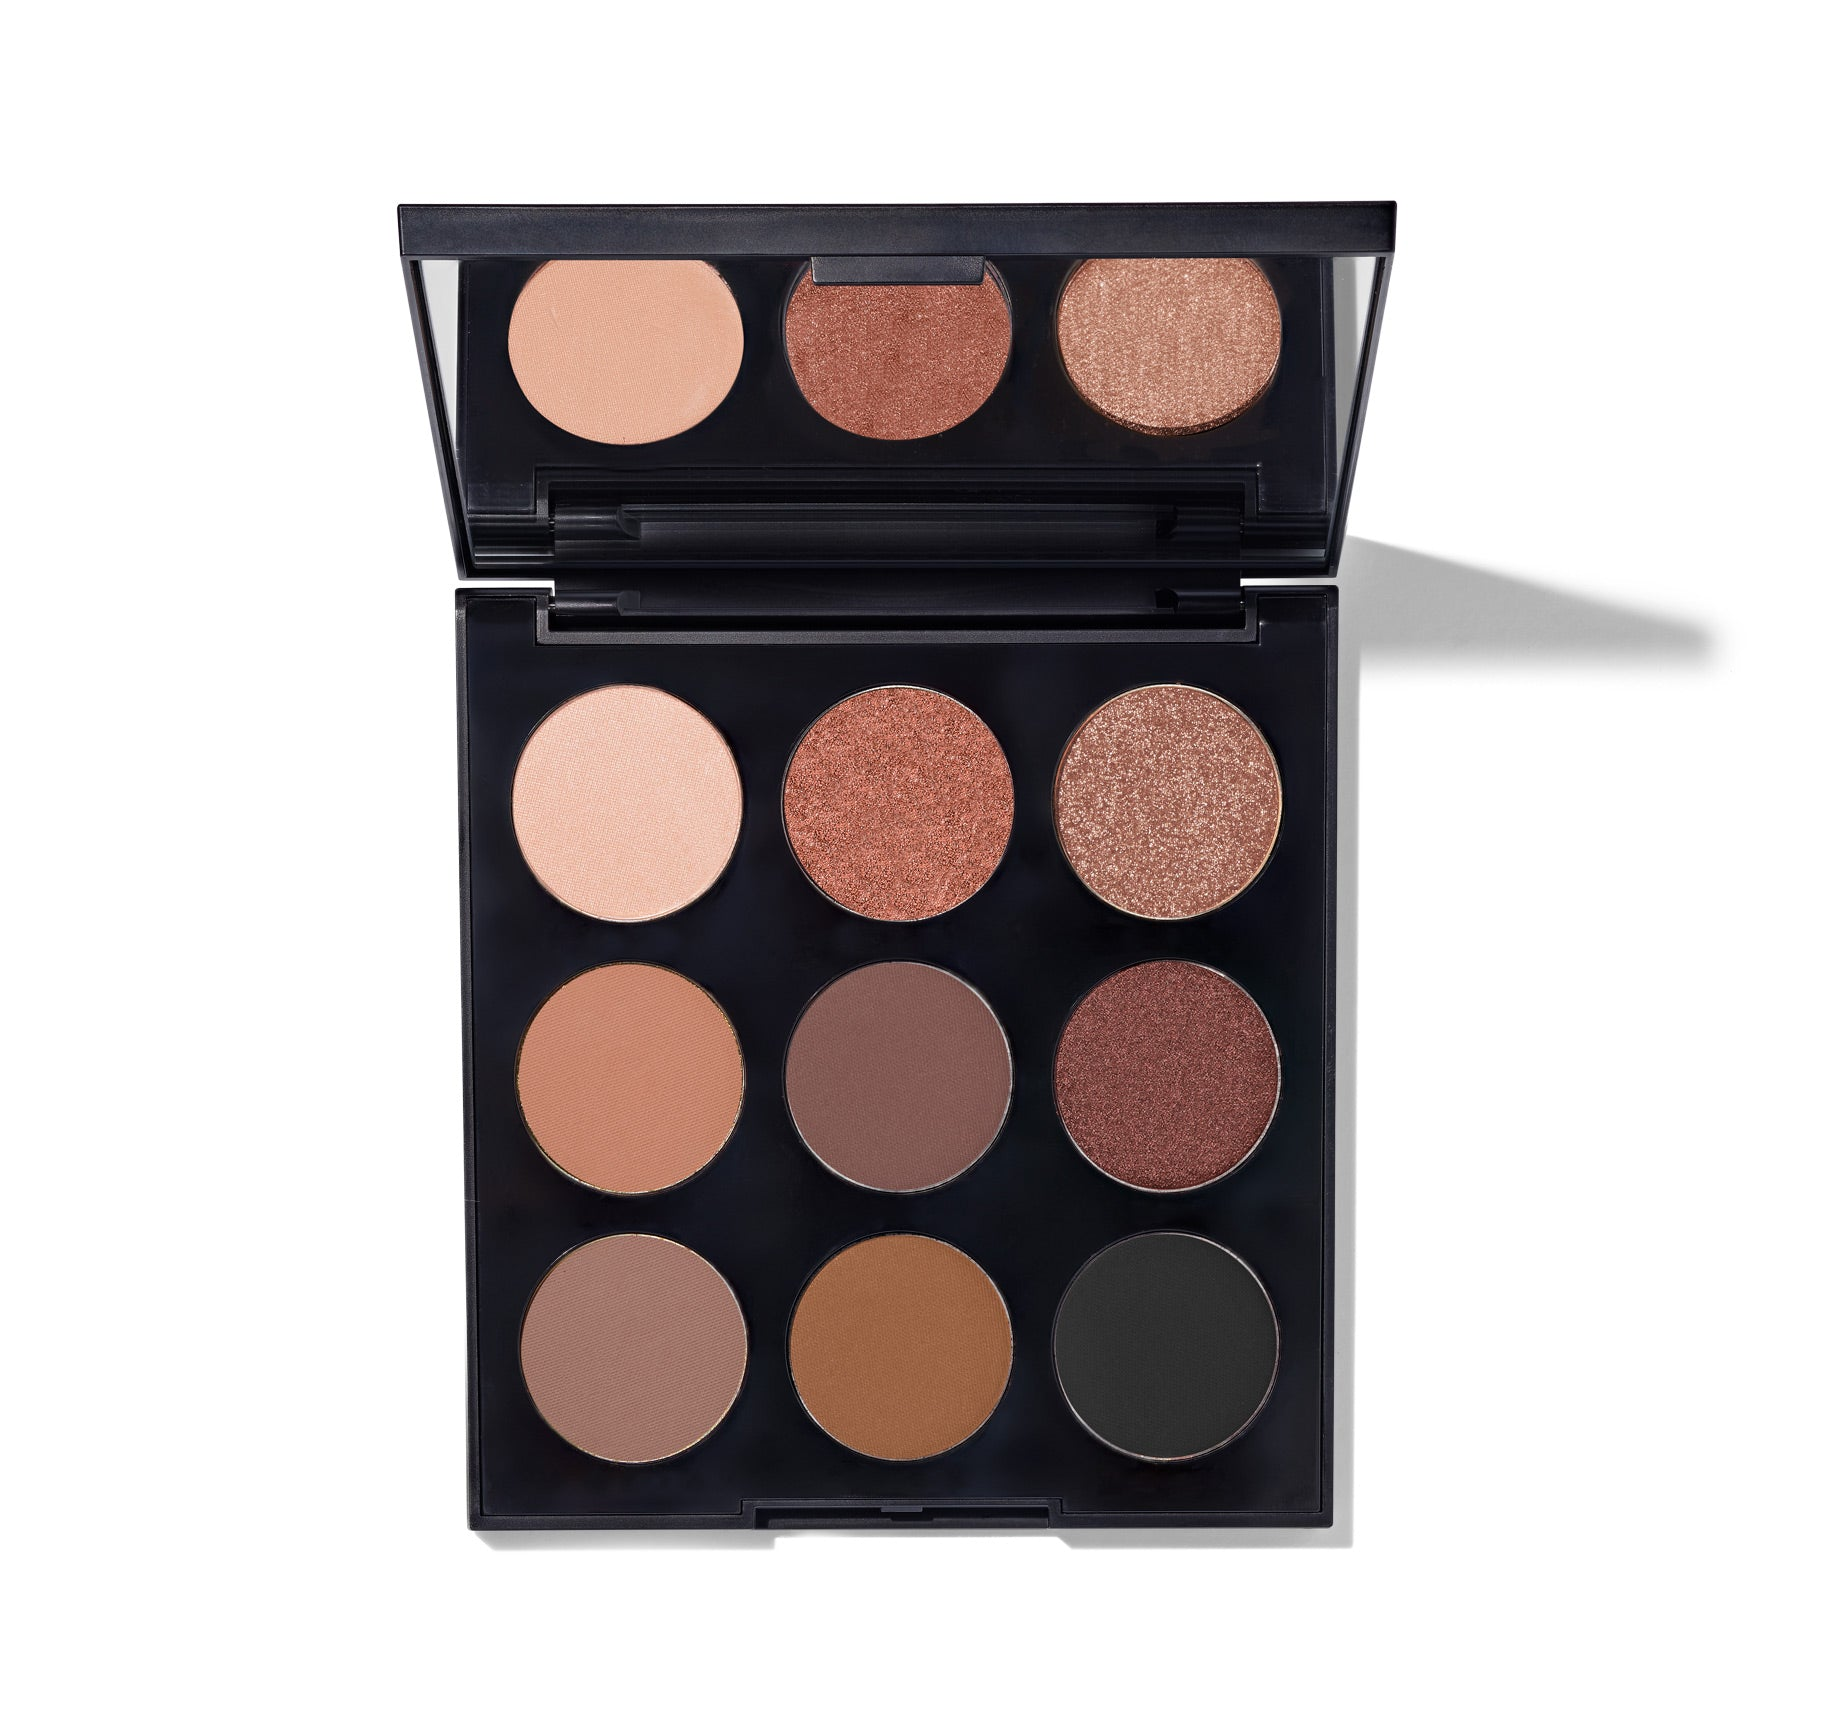 9T NEUTRAL TERRITORY ARTISTRY PALETTE, view larger image